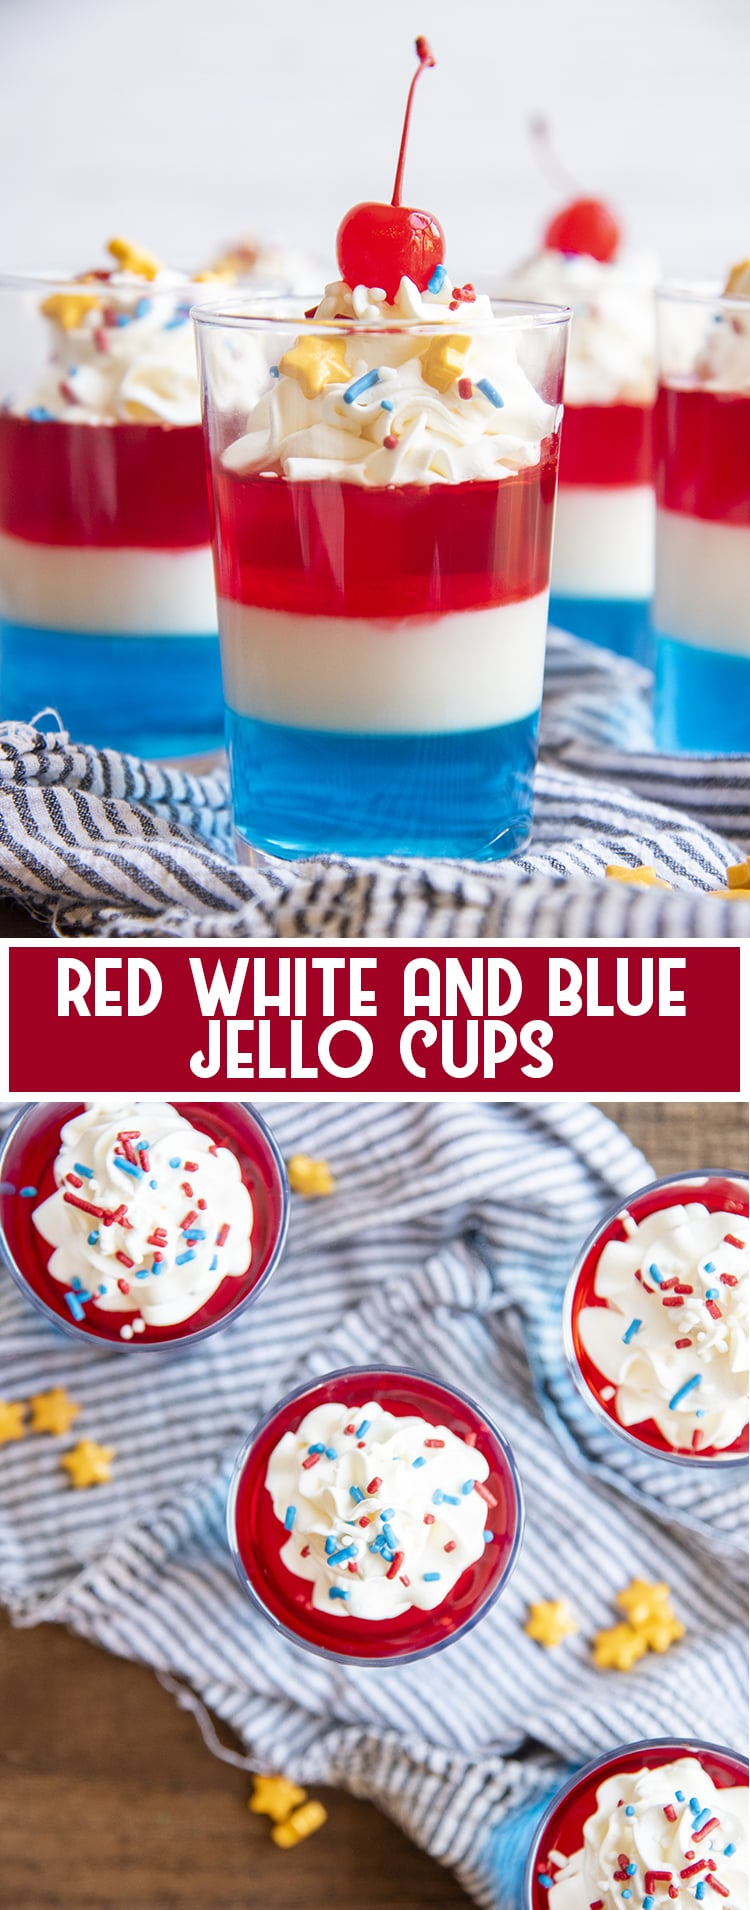 Layers of Red White and Blue Jello in a cup with whipped cream and a cherry on top with text overlay for pinterest